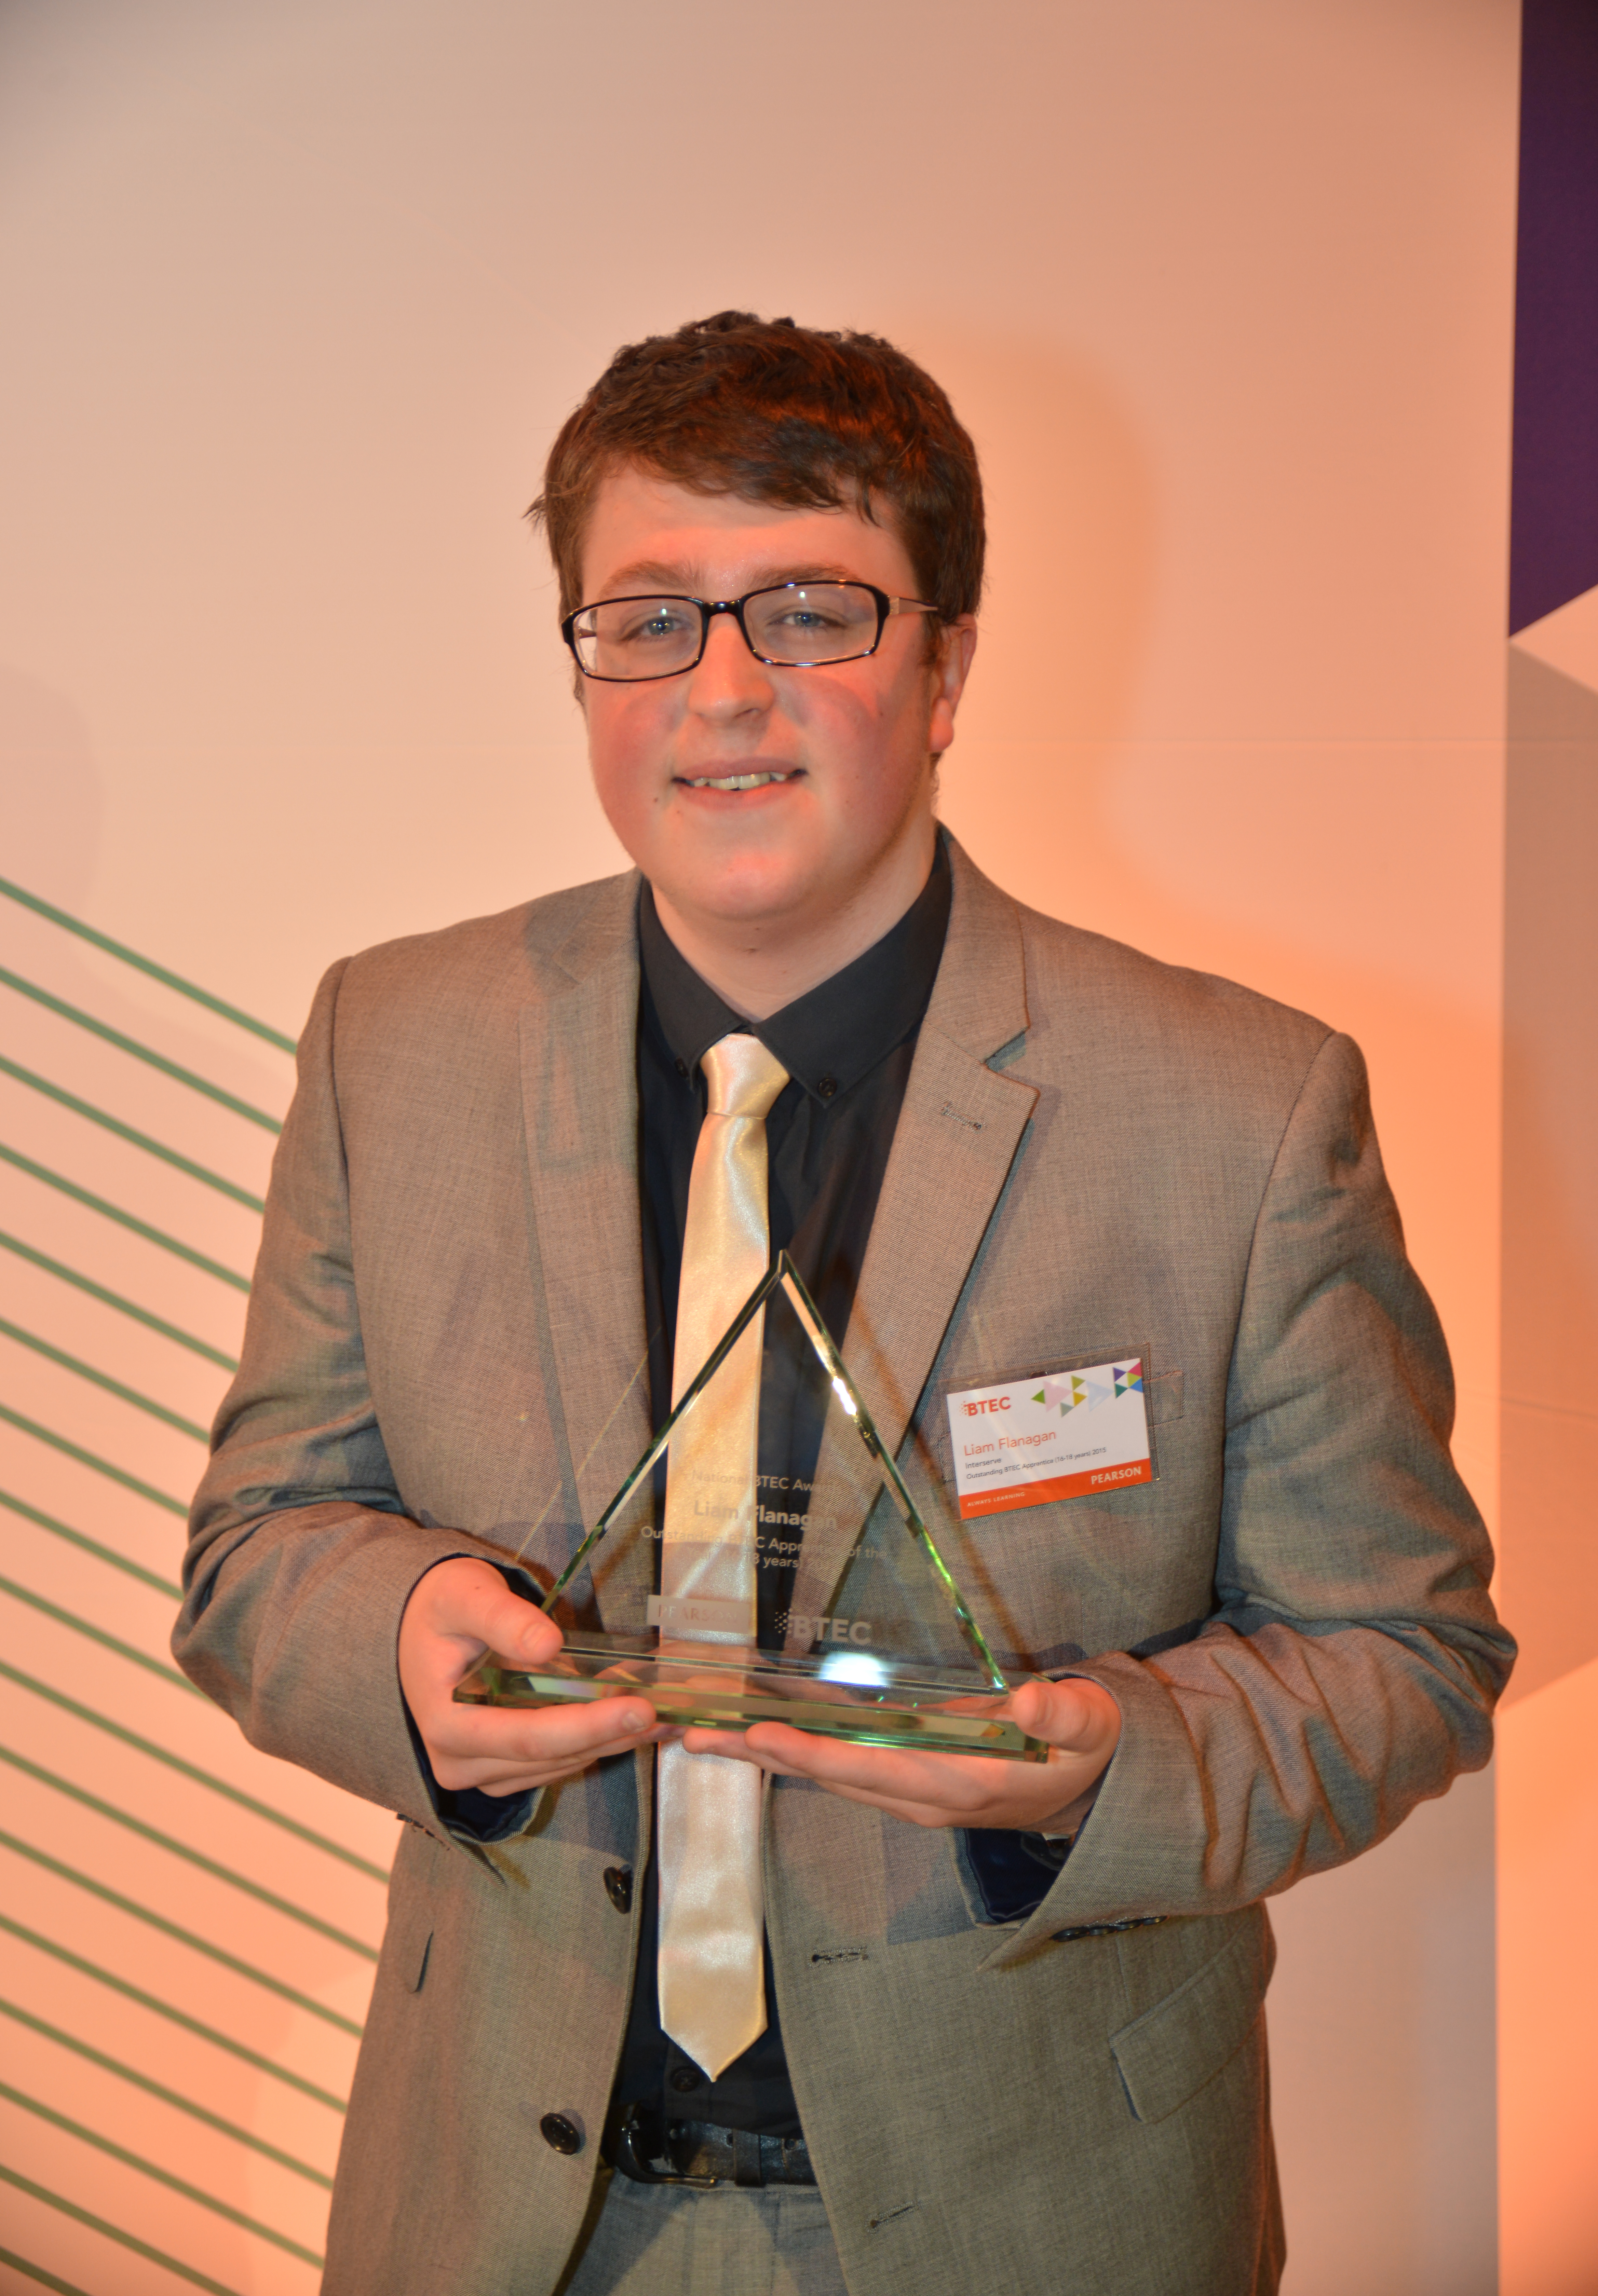 Liam Flanagan, aged 19, Howells Solicitors Sheffield